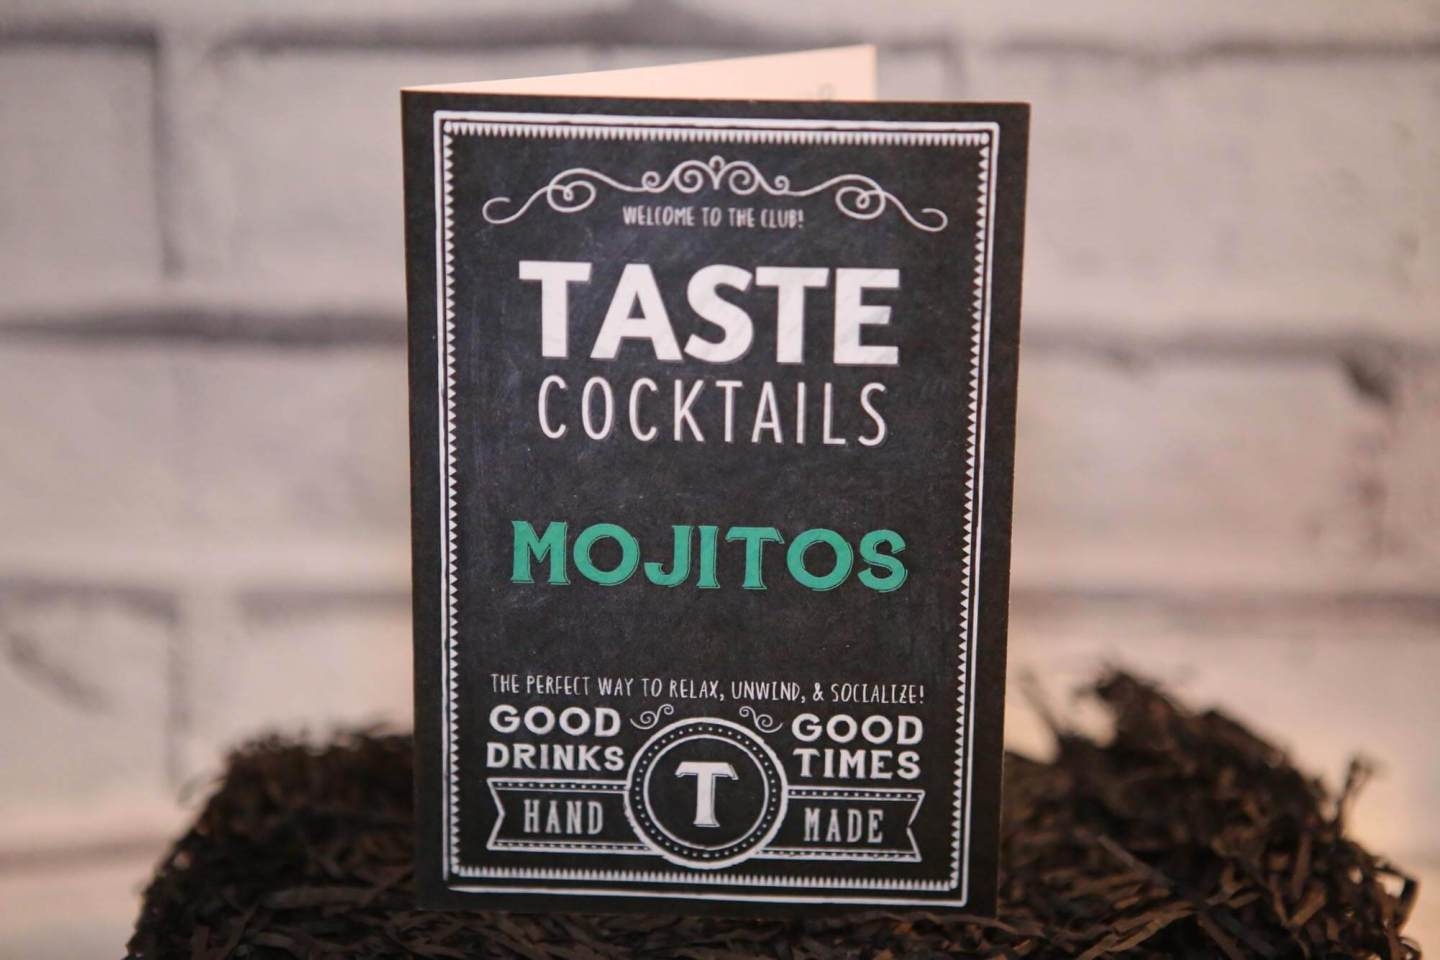 Saturday Nights In With Taste Cocktails